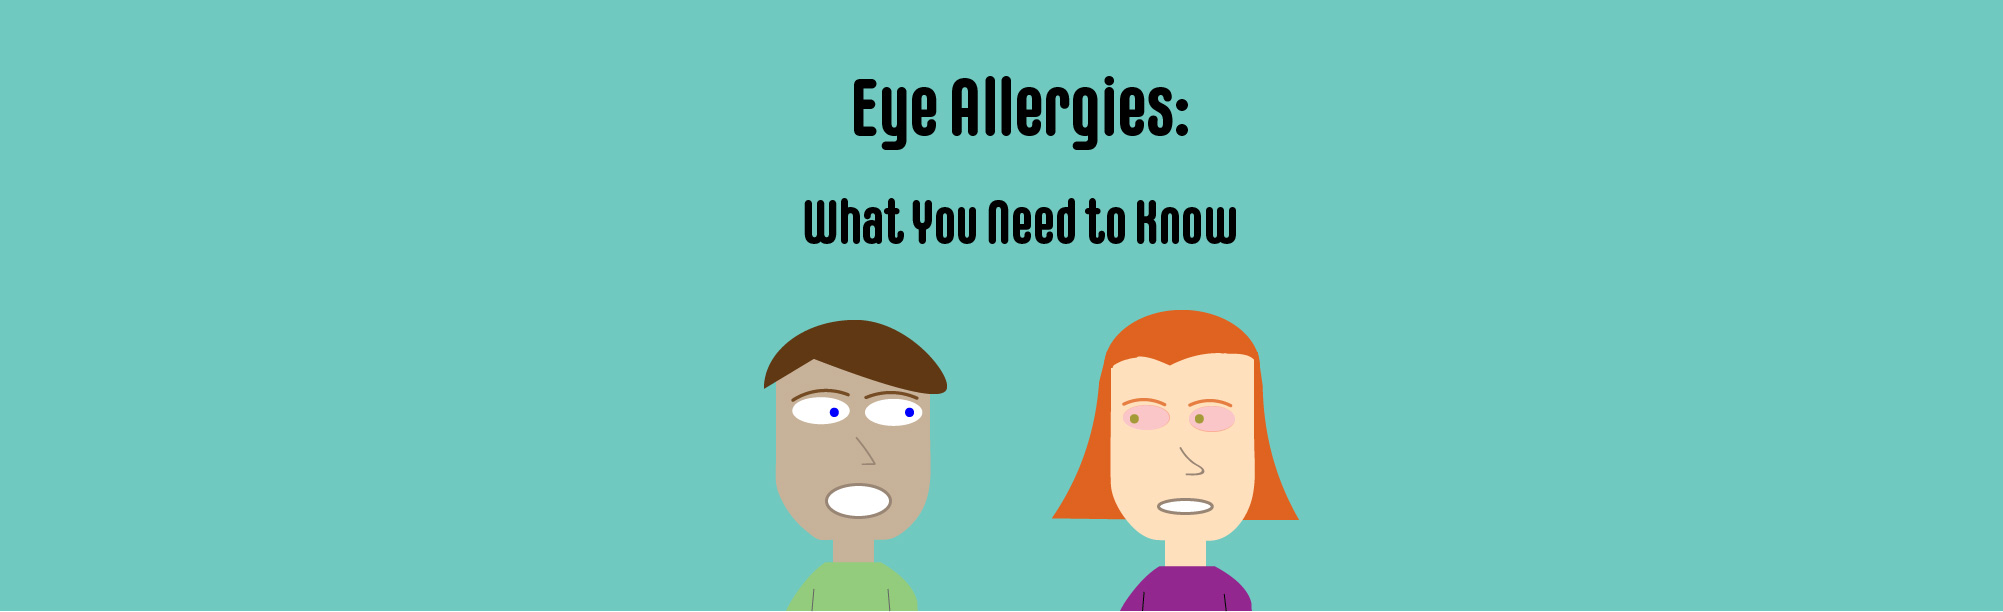 Eye-Allergies-need-to-know-for-site-2